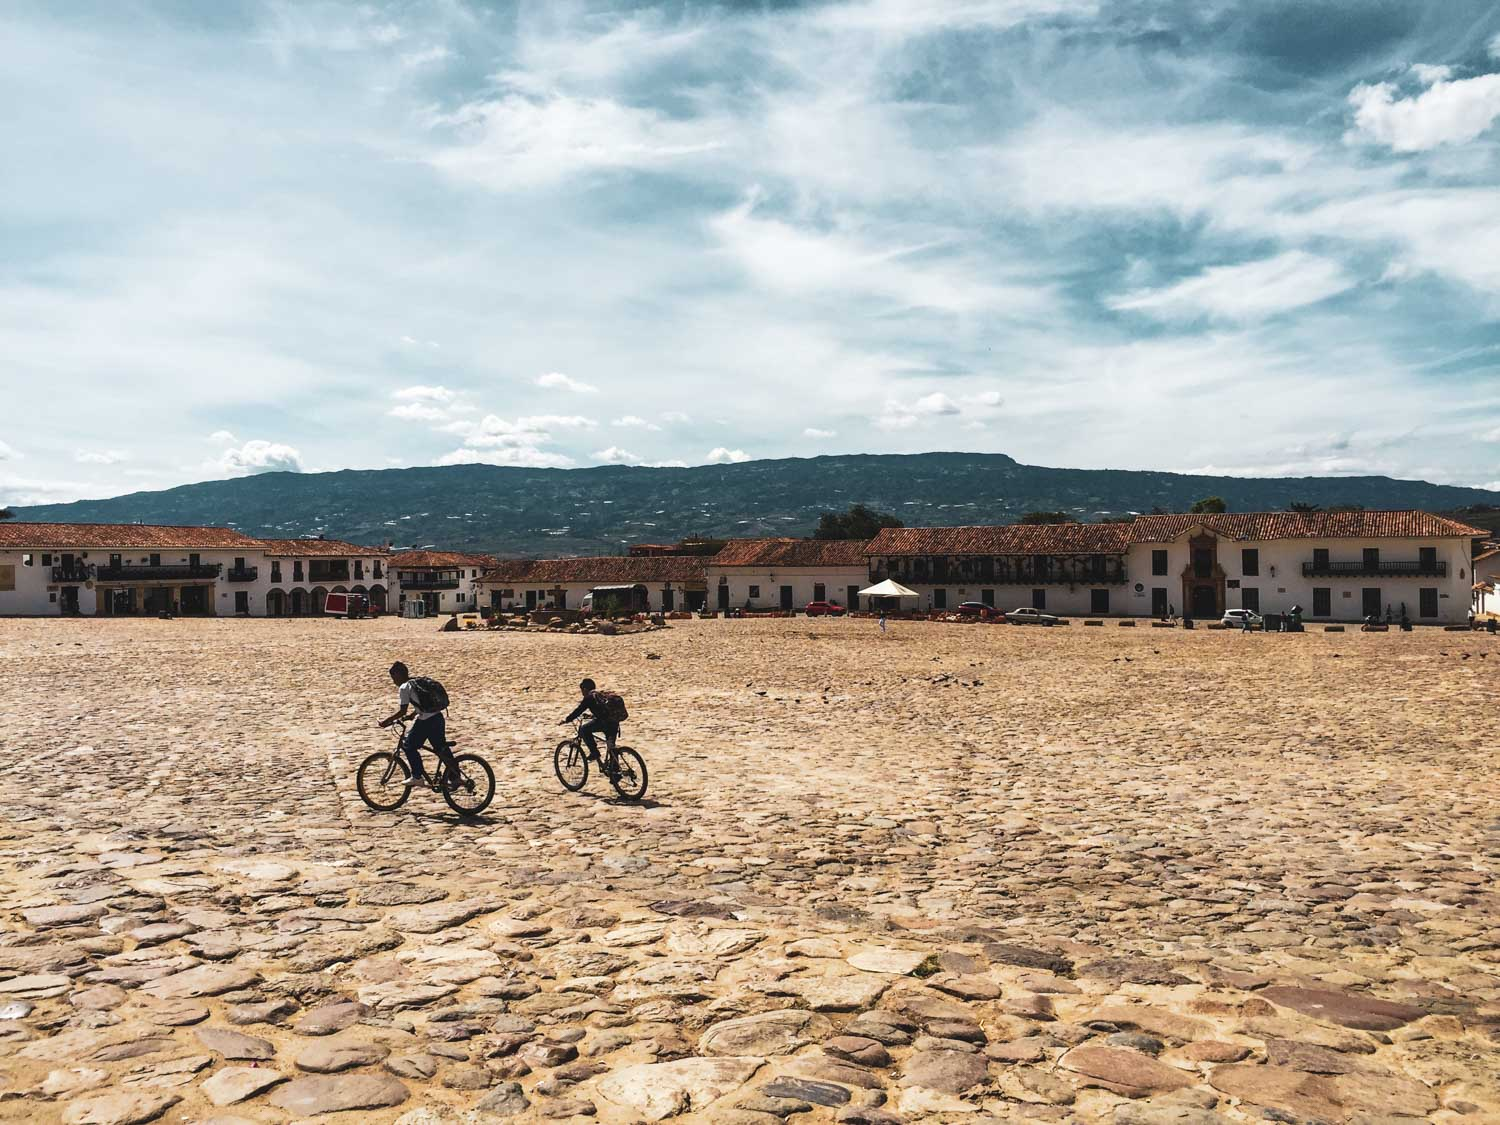 The biggest cobble stone plaza in South America